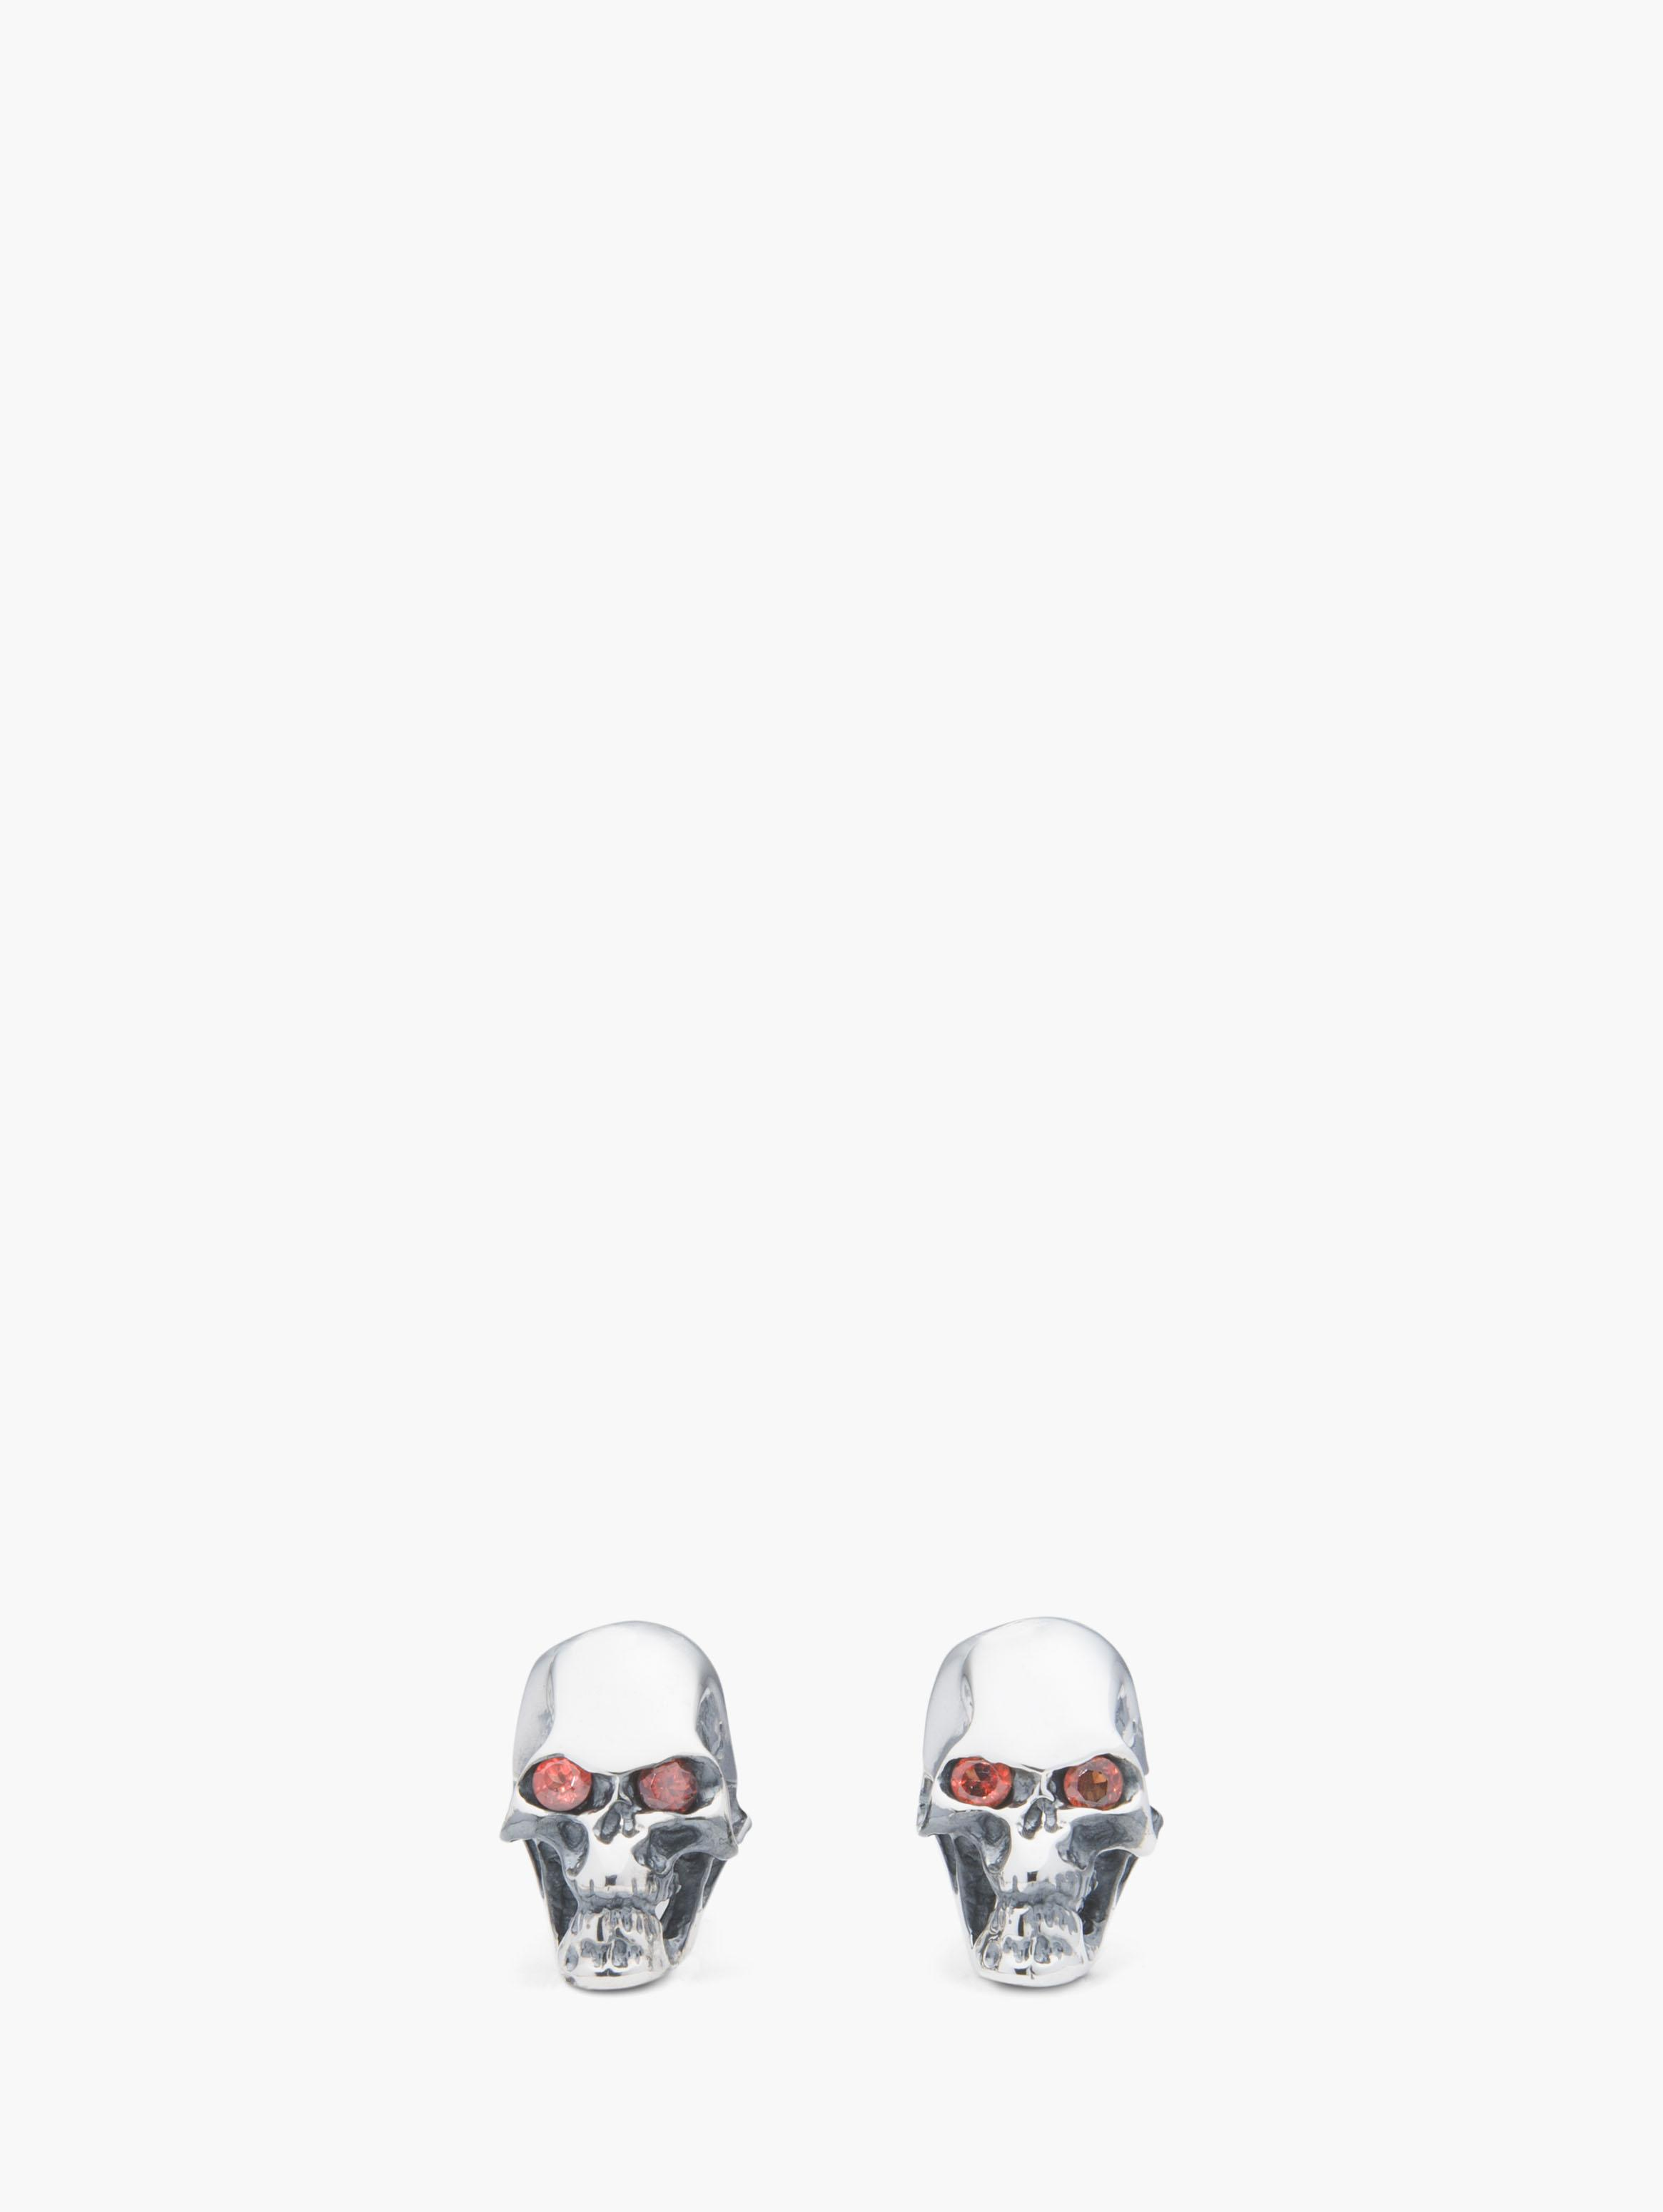 Screaming Skull Cufflink